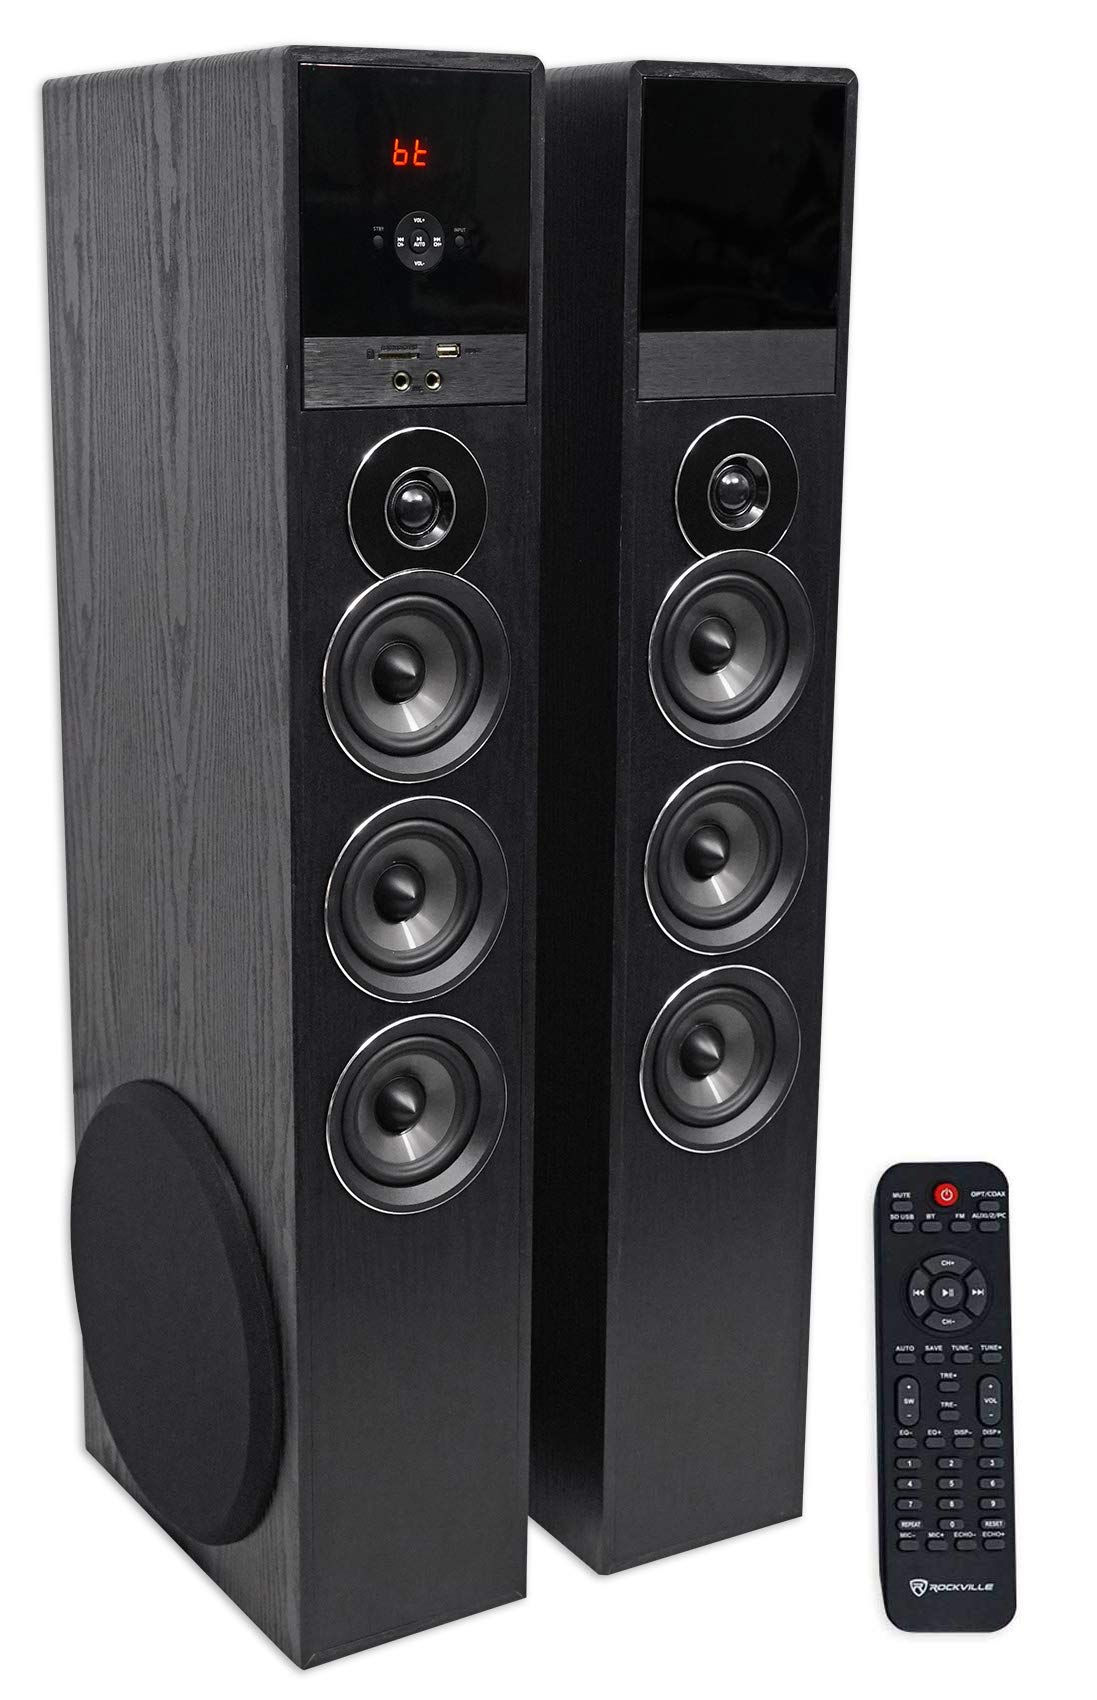 Rockville TM150B Black Home Theater System Tower Speakers 10'' Sub/Blueooth/USB